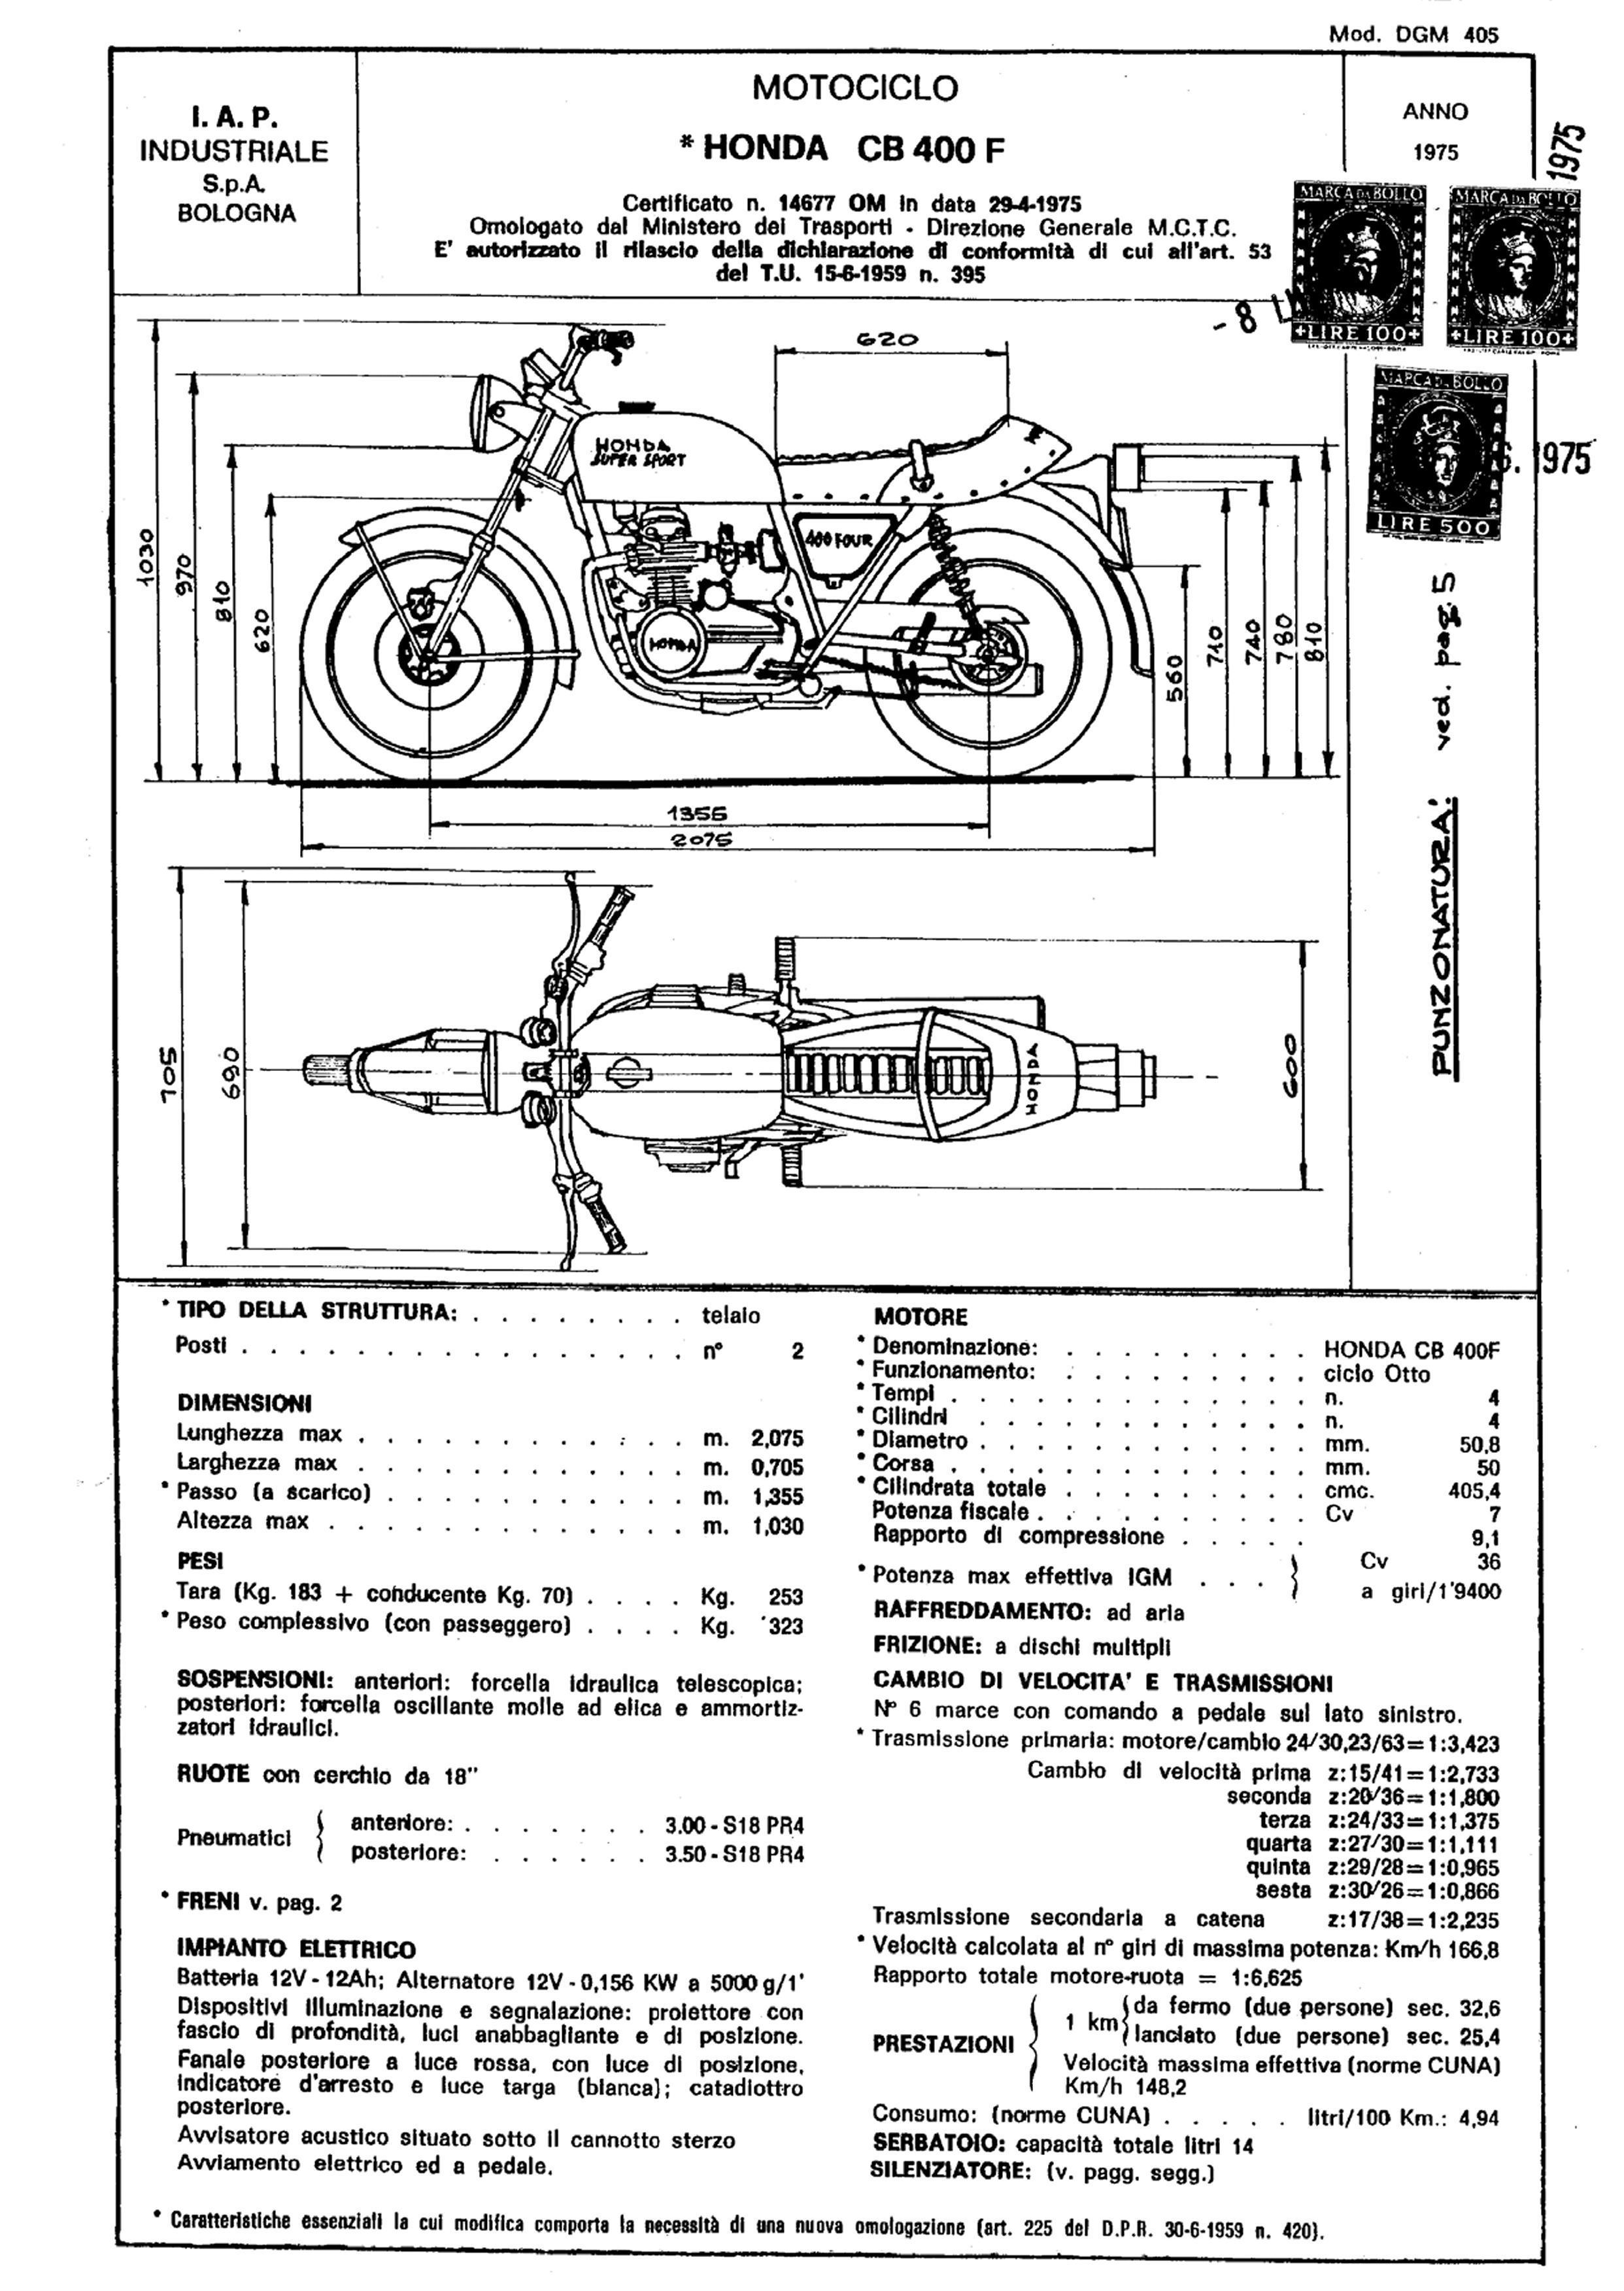 cb400t wiring diagram free and safe pdf workshop manuals for your honda moped and motorbike  pdf workshop manuals for your honda